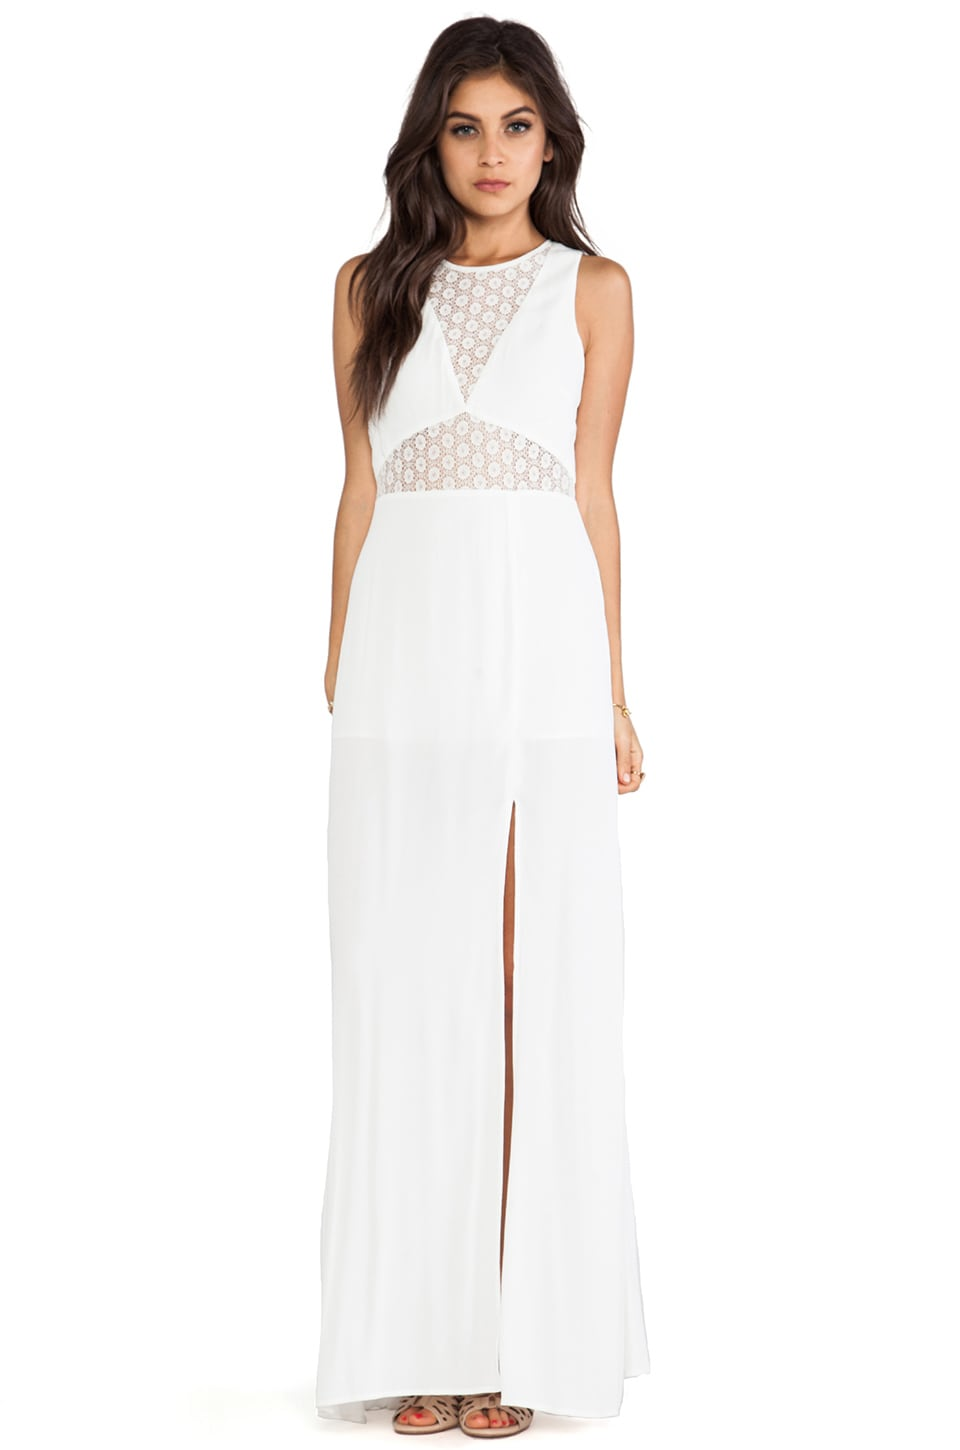 JARLO Noah Dress in Ivory